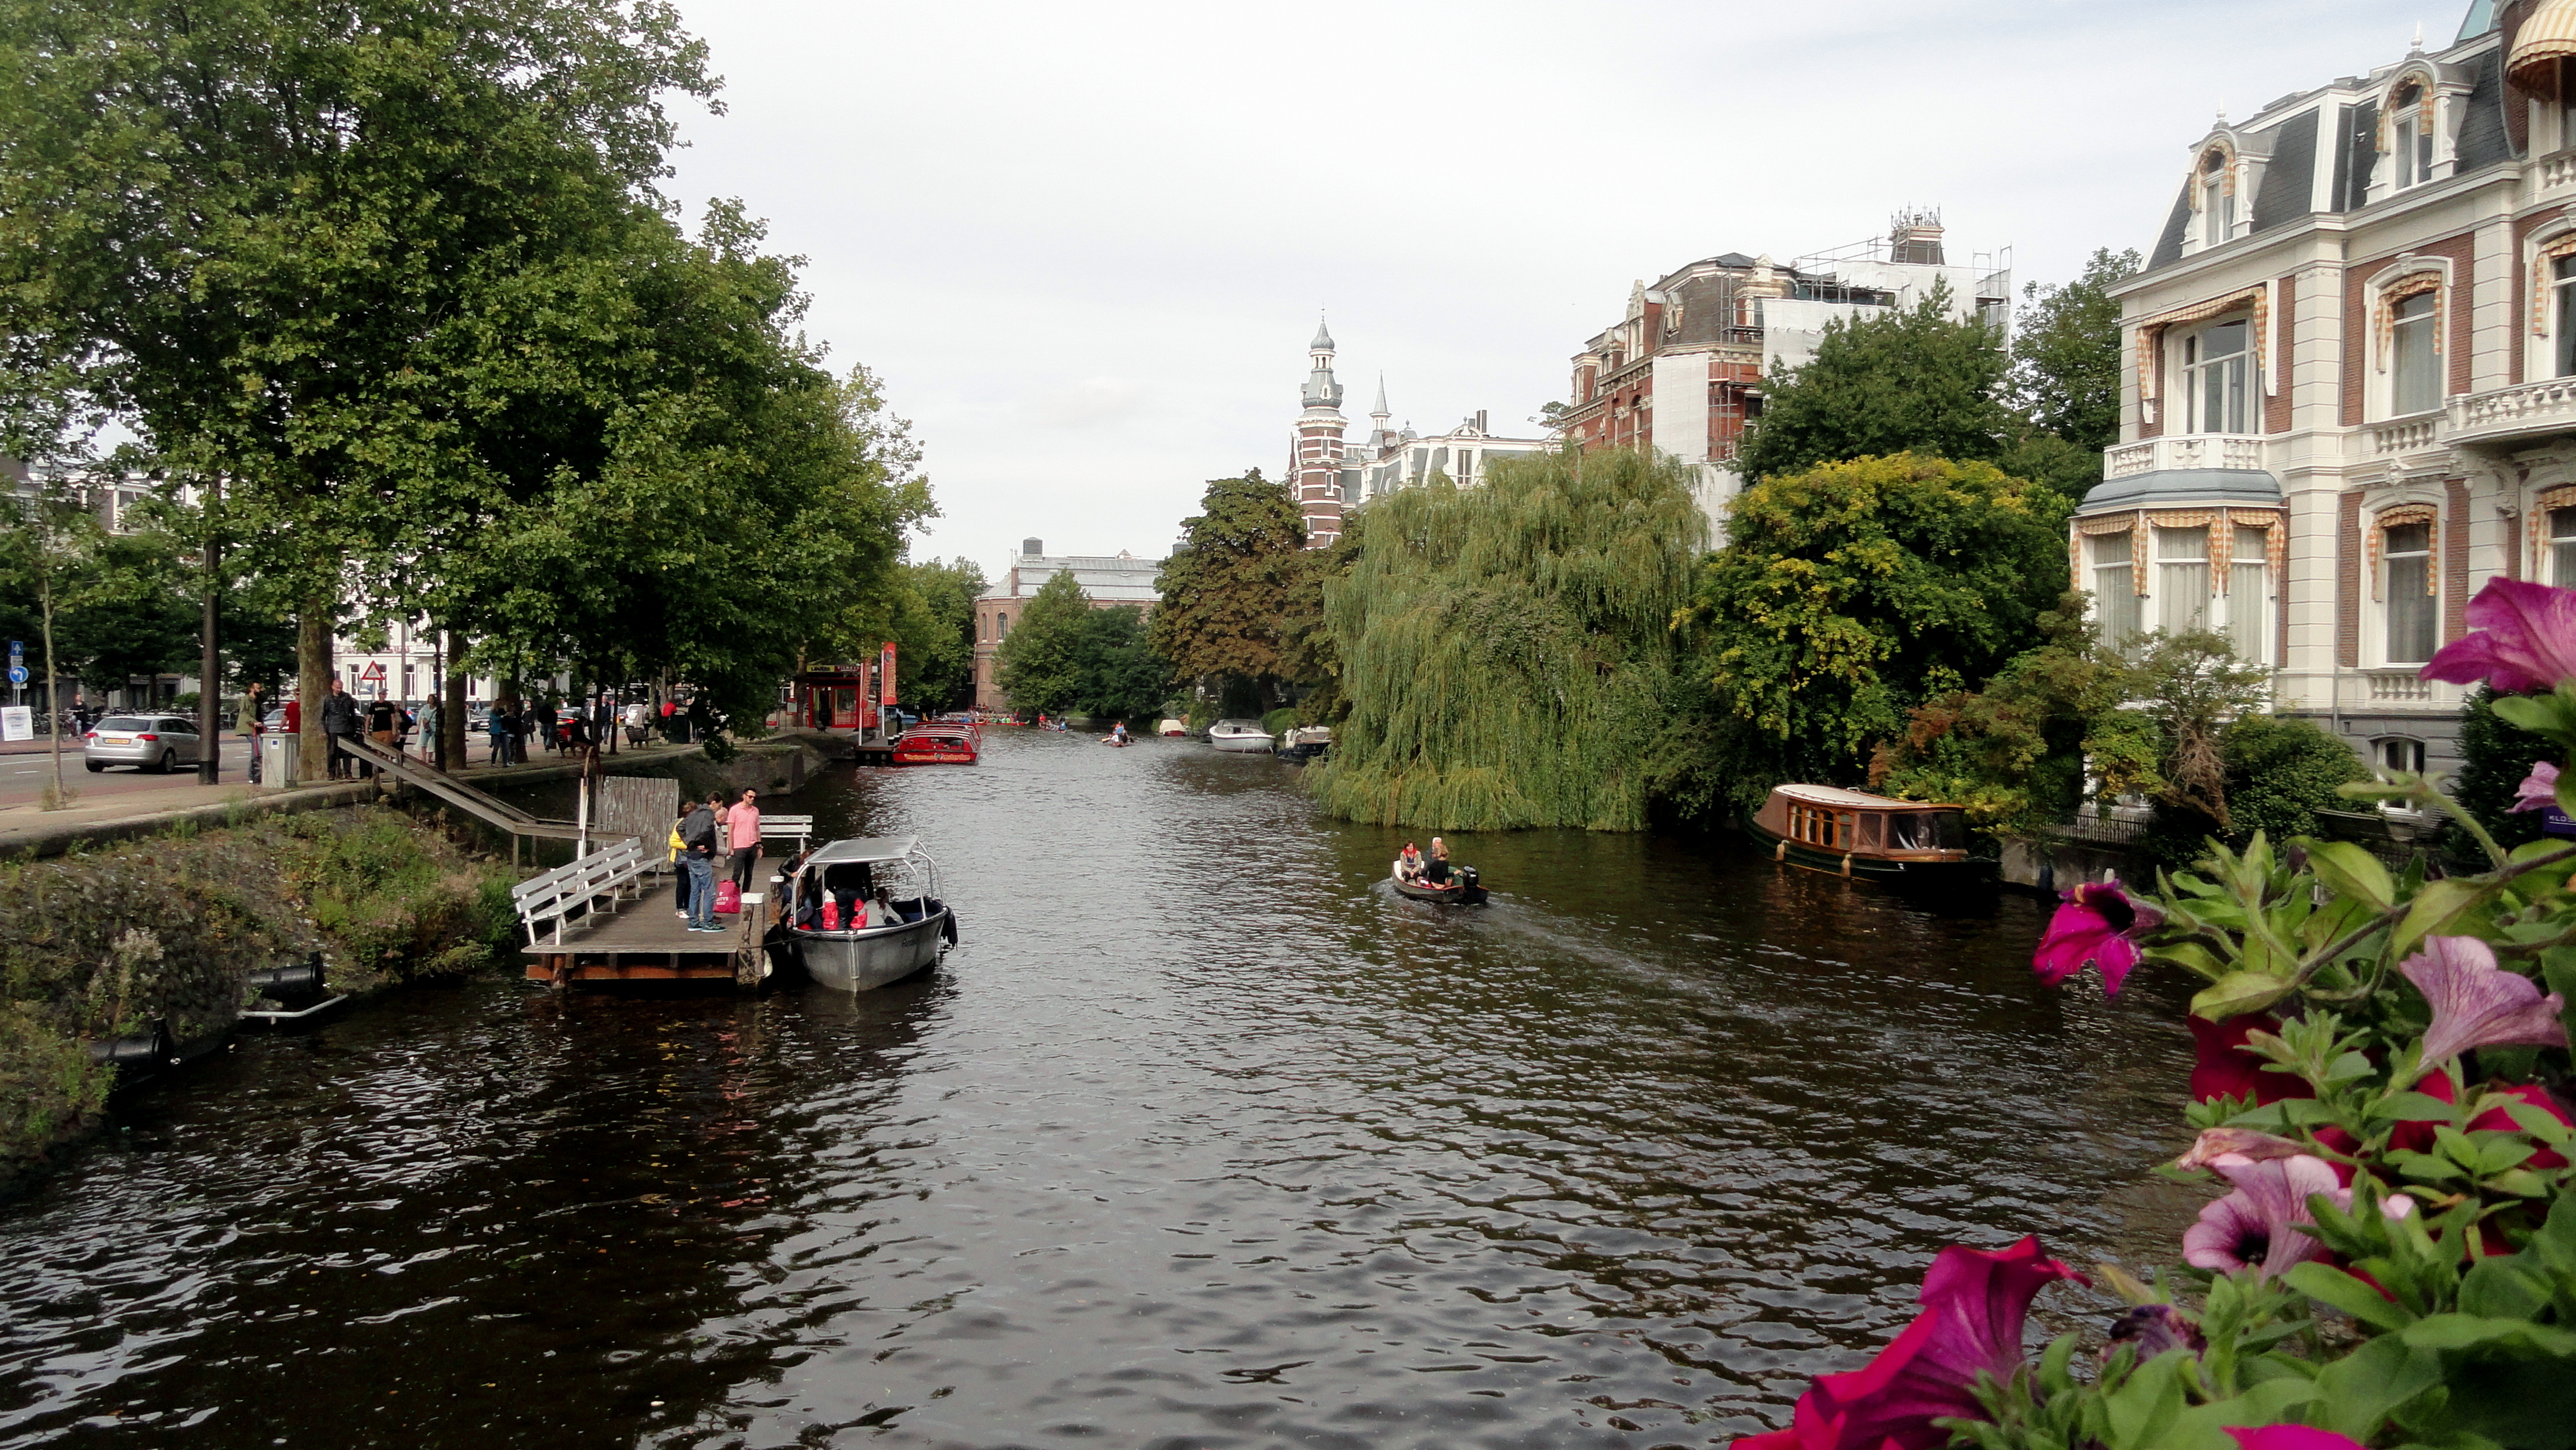 Boat-Filled Canal